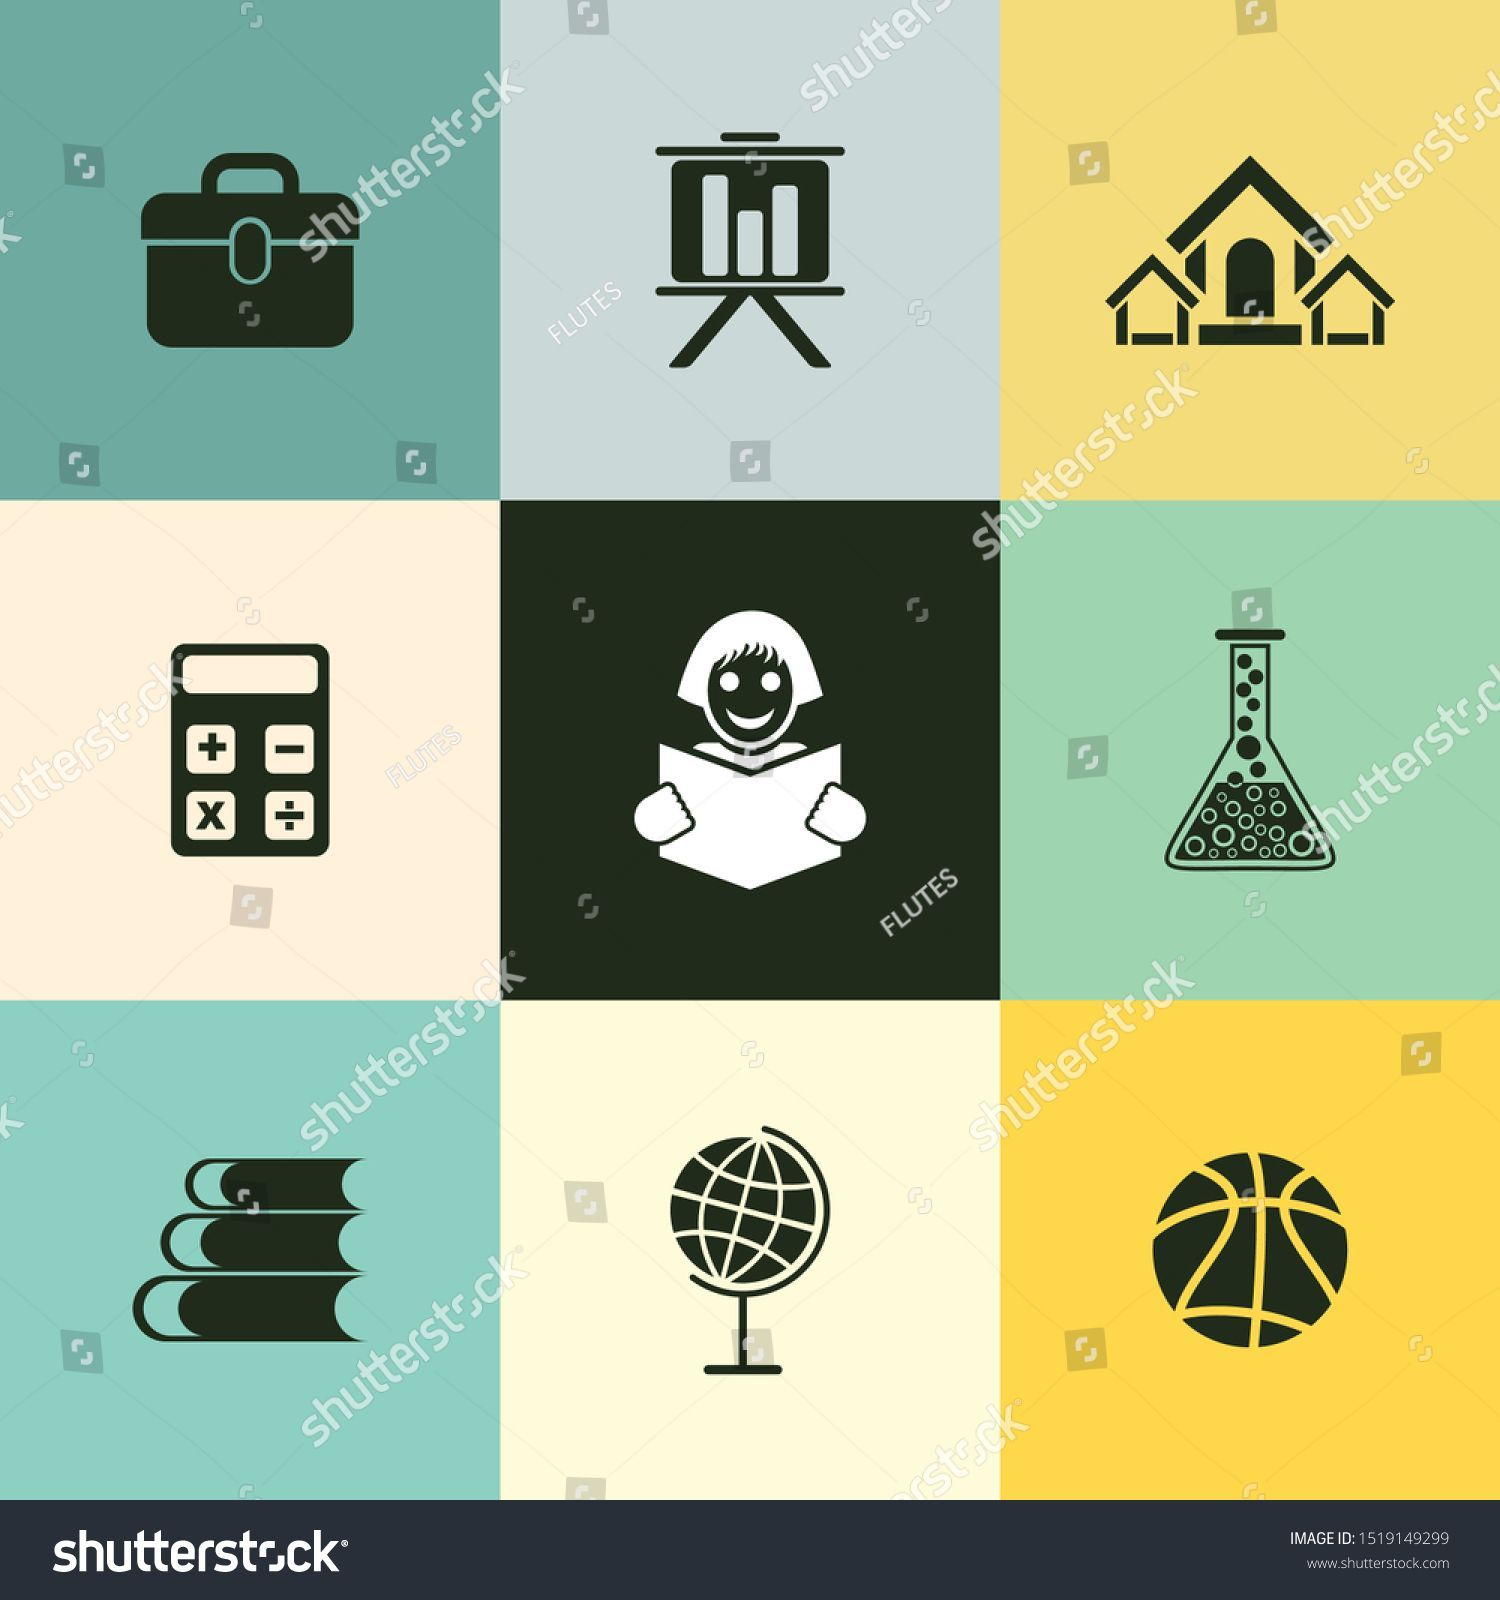 Very Useful 9 Education Vector Icon Set For Design In